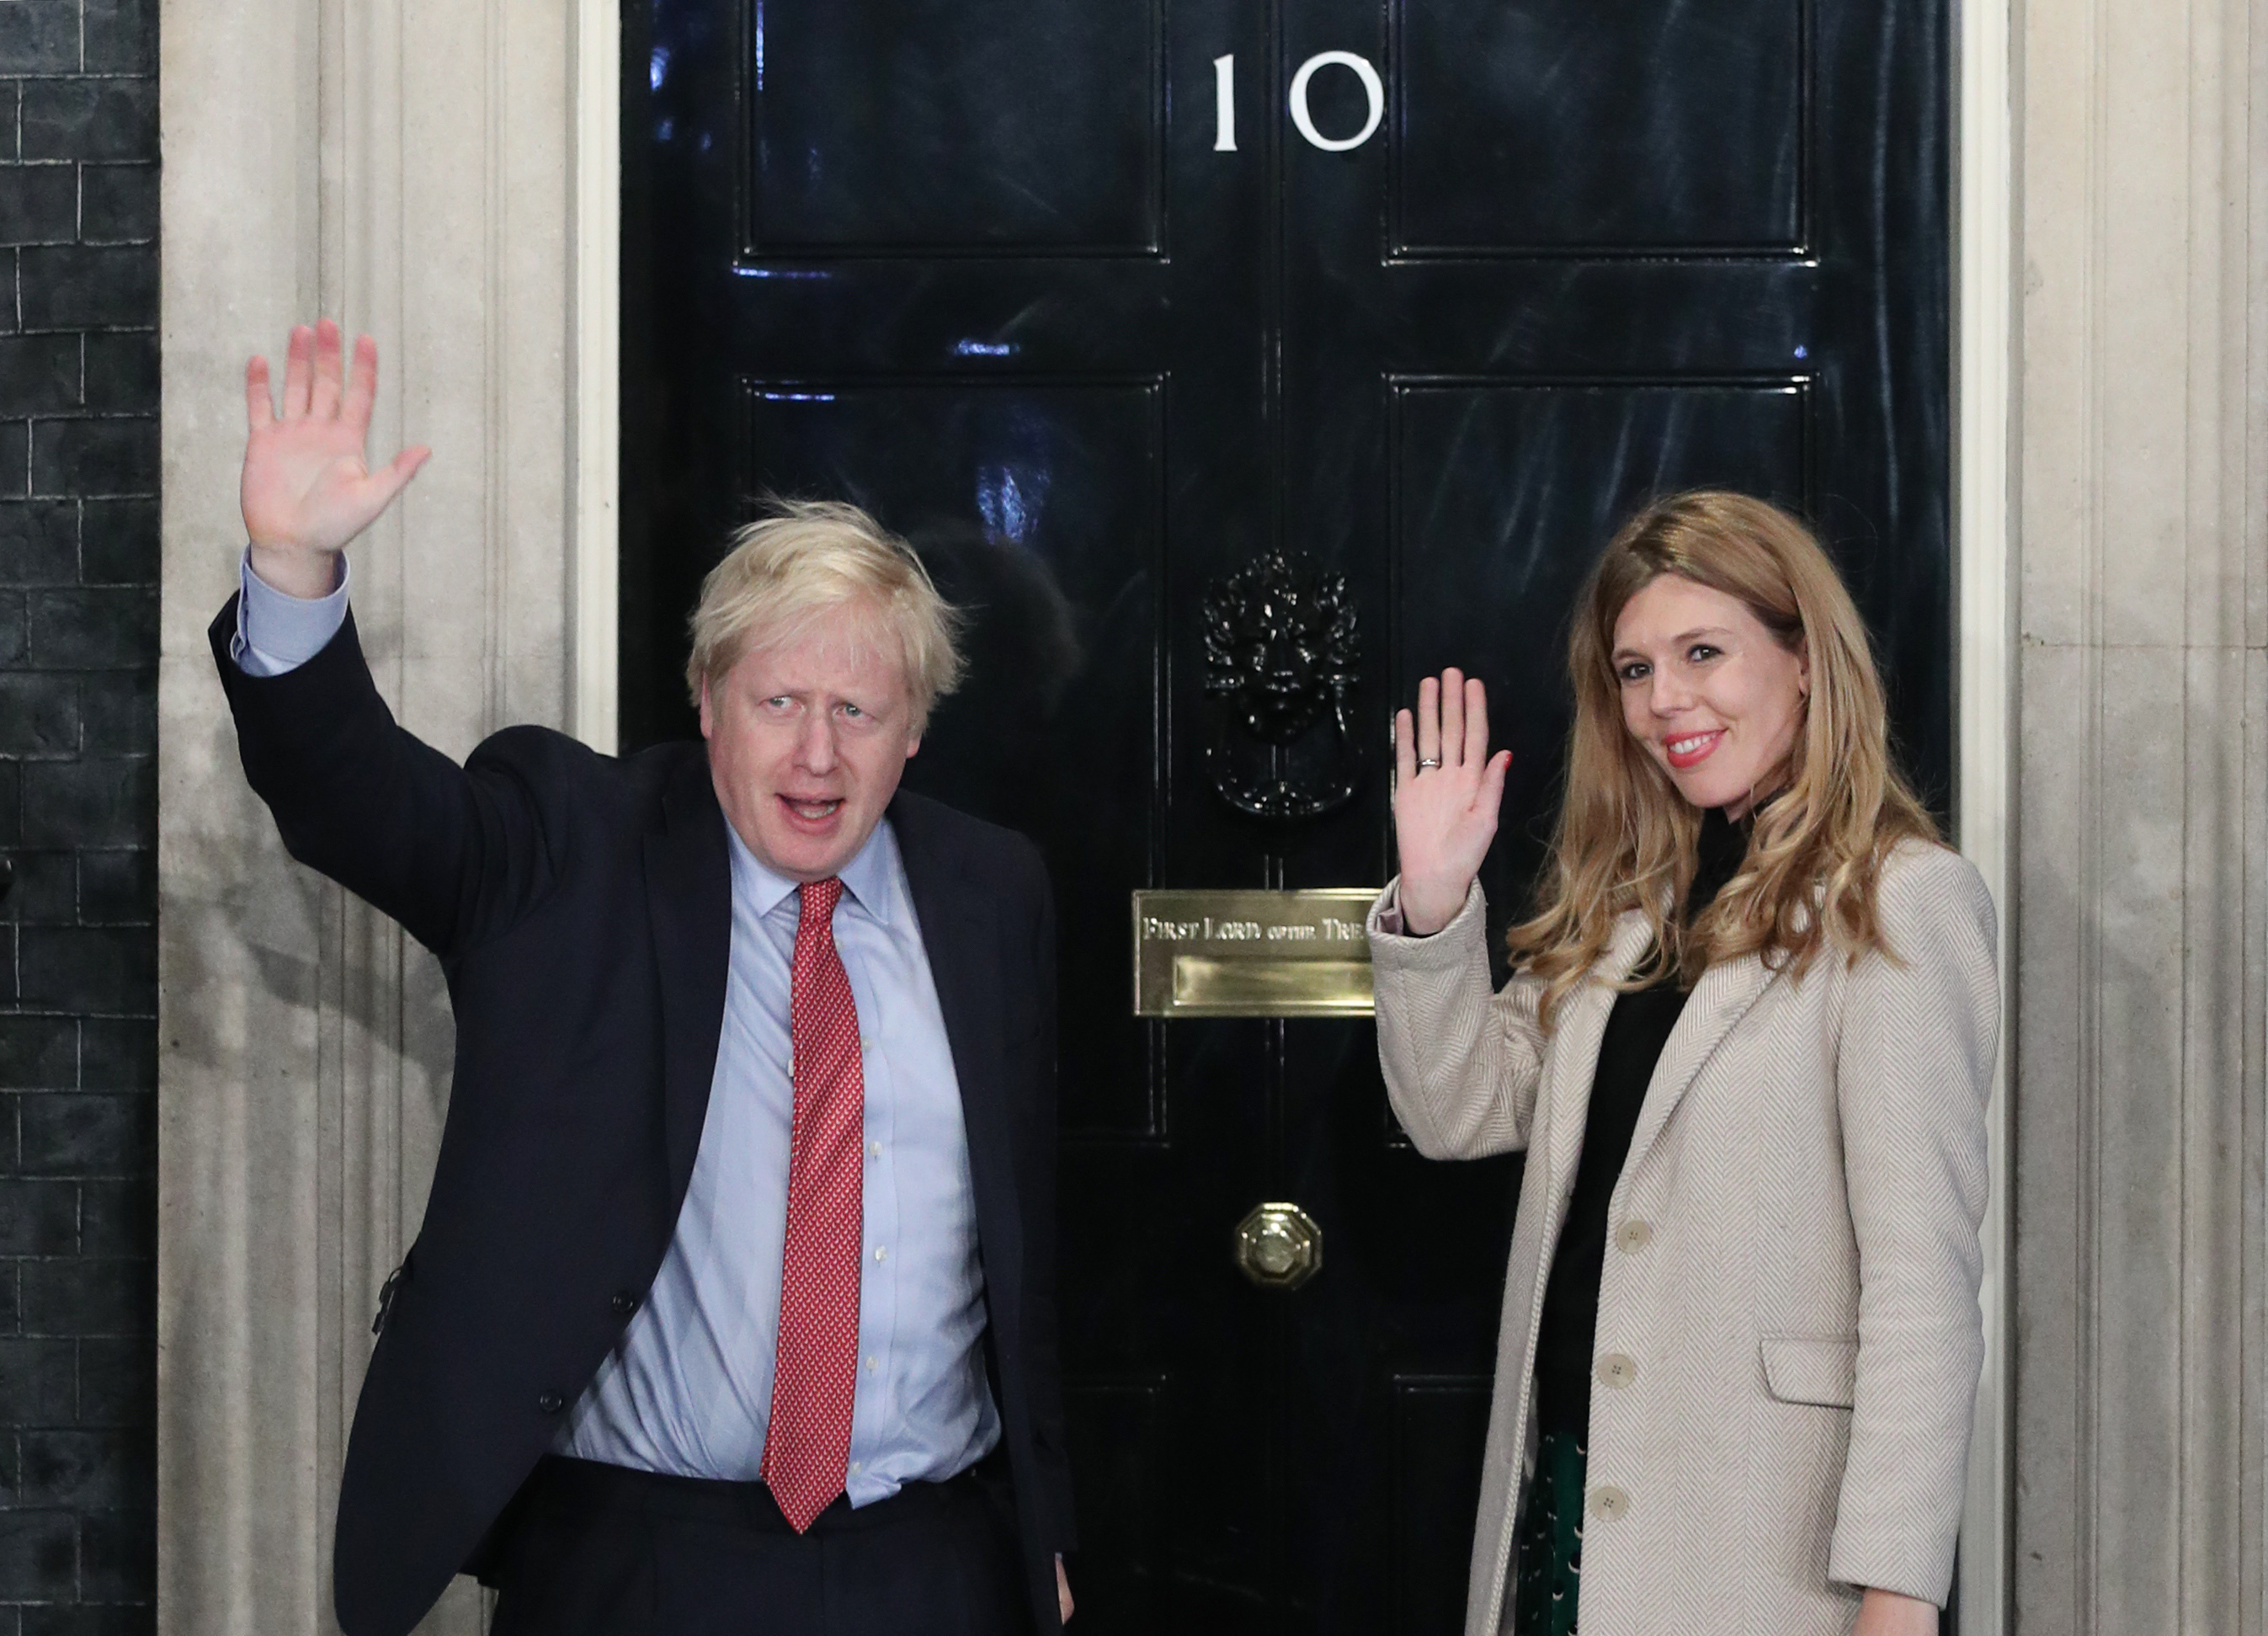 PA REVIEW OF THE YEAR 2019 File photo dated 13/12/19 of Prime Minister Boris Johnson and his girlfriend Carrie Symonds arriving in Downing Street after the Conservative Party was returned to power in the General Election.